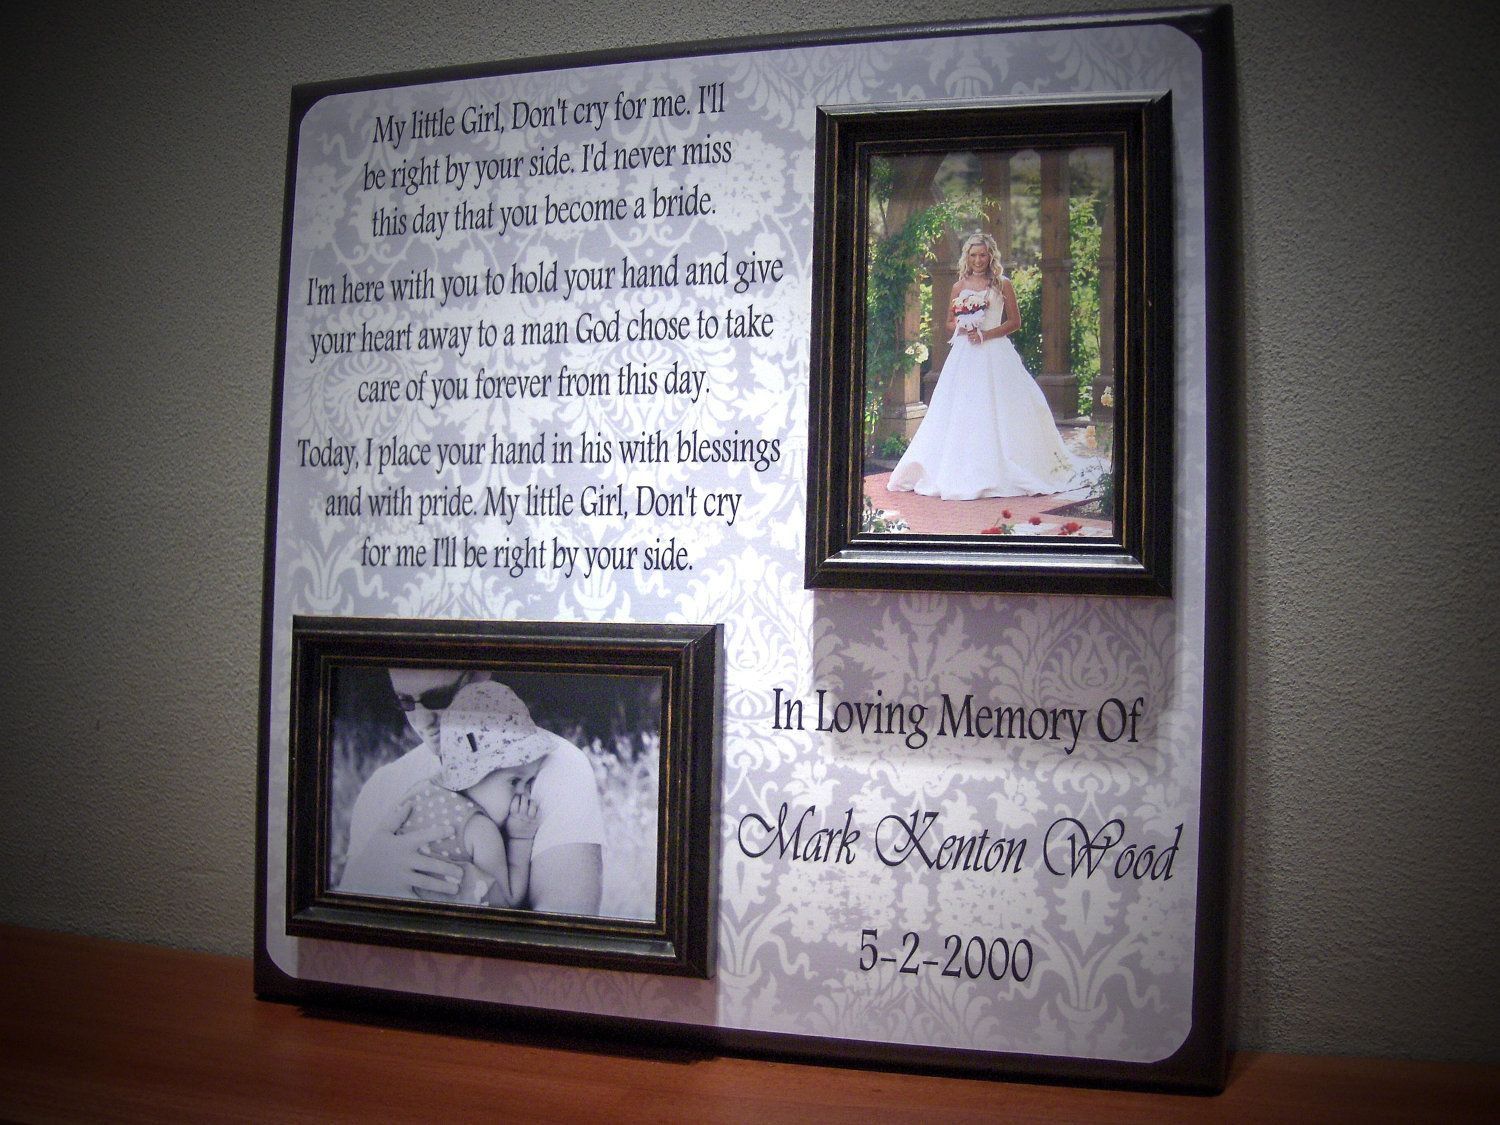 Remembrance of dad on wedding in memory of picture frame parent remembrance of dad on wedding in memory of picture frame parent wedding jeuxipadfo Gallery